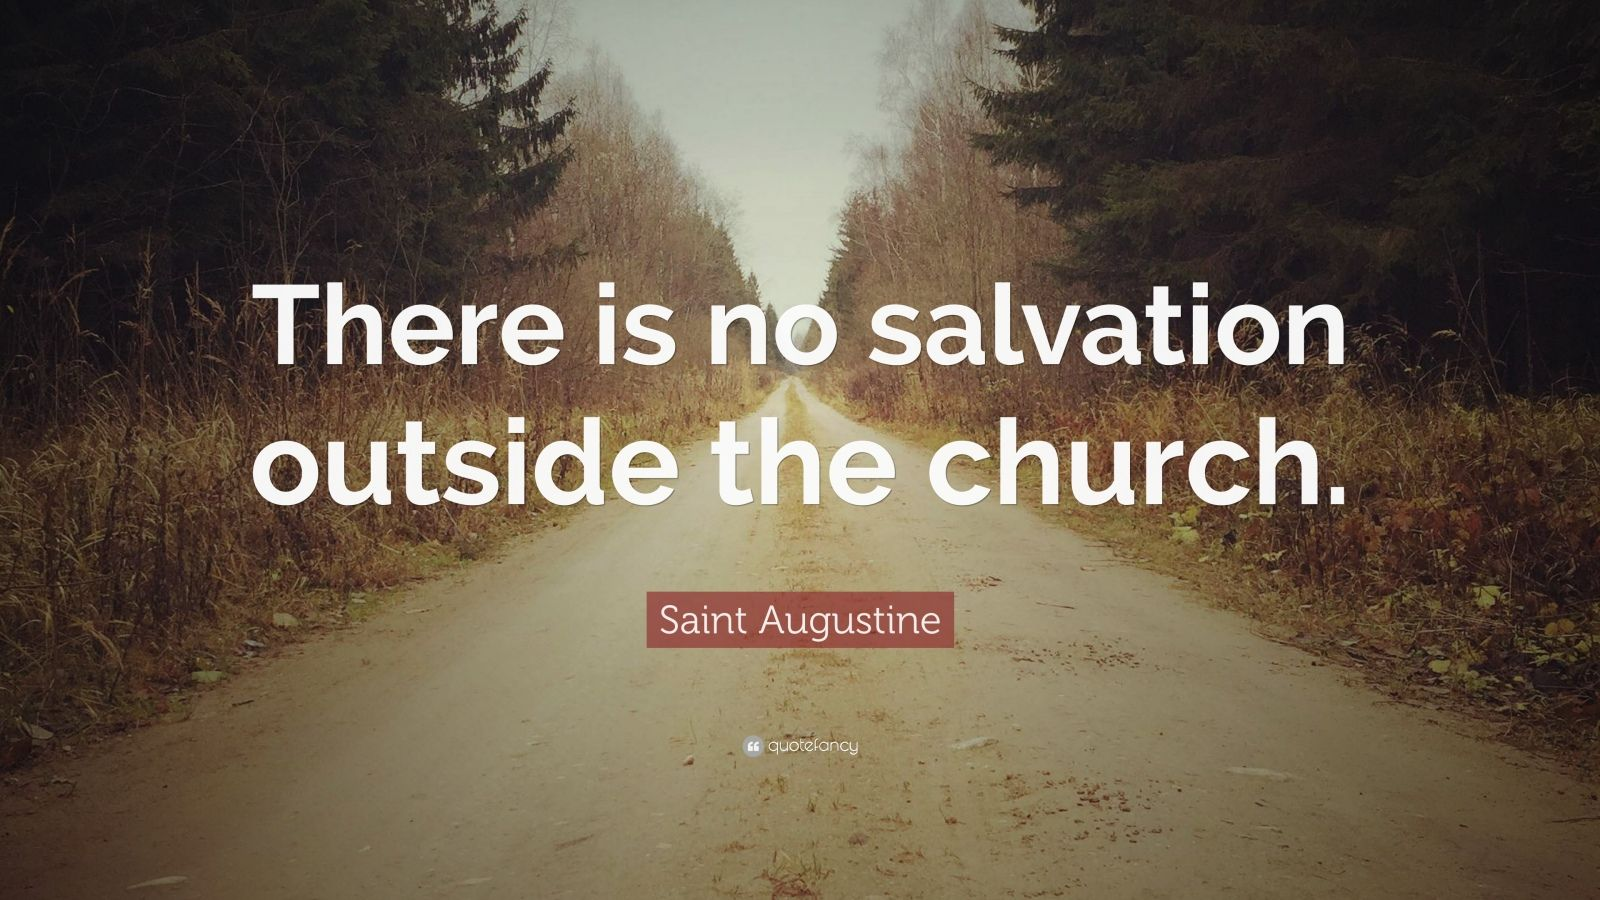 no salvation outside the poor prophetic-utopian essays Exclusive pax christi usa interview with jon sobrino (part 2) no salvation outside the poor: prophetic-utopian essays, published by orbis books.